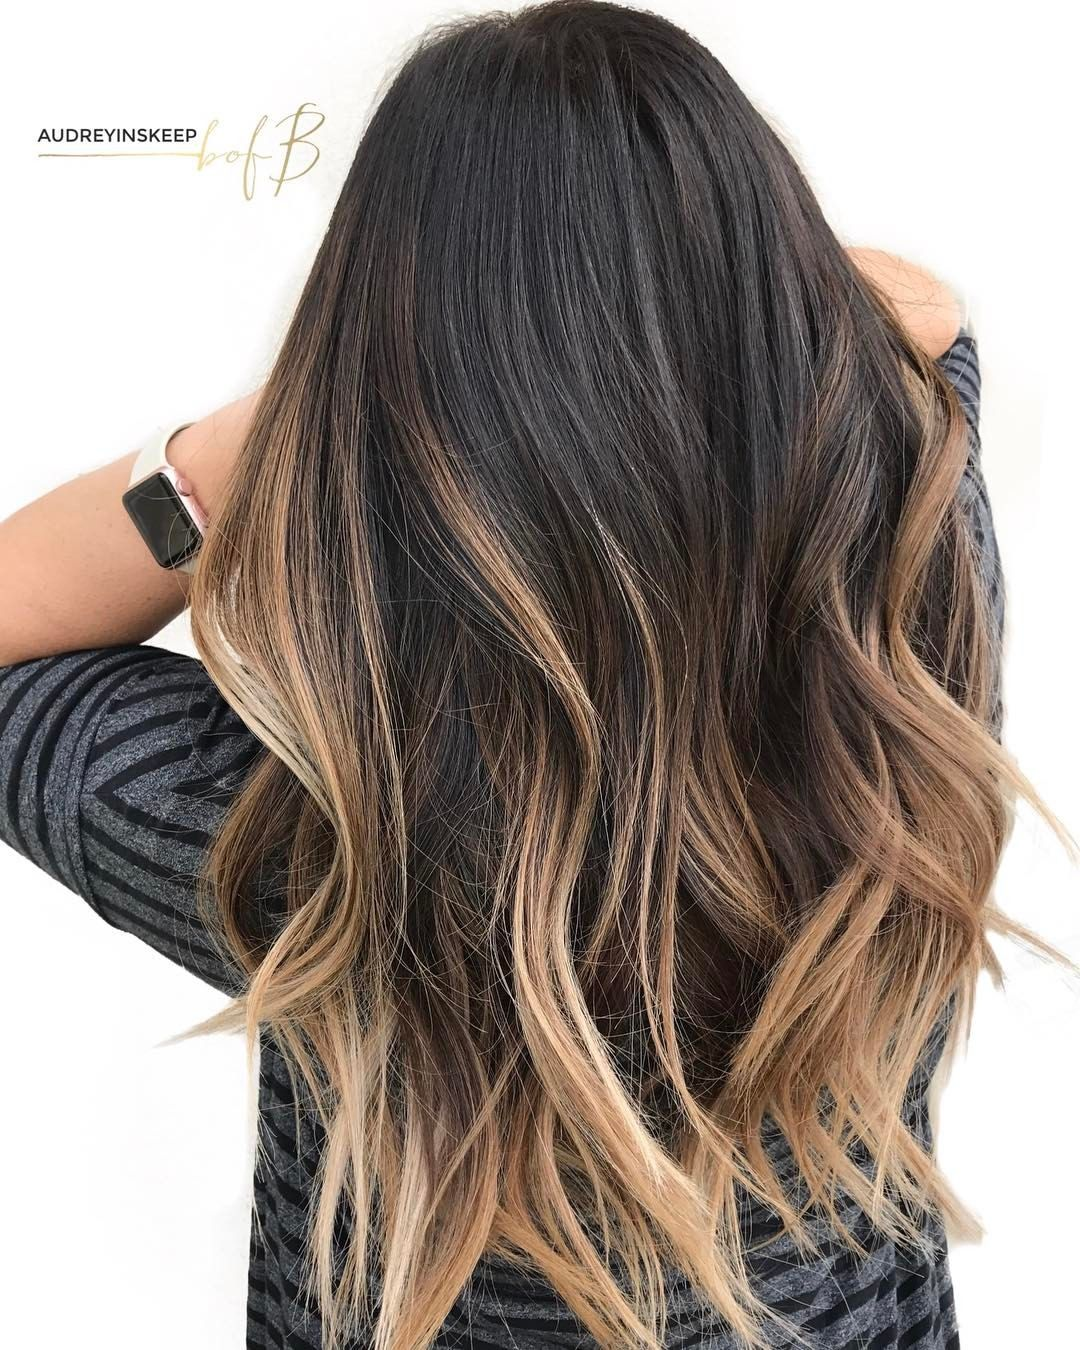 Utah Balayage Hair Painting on Instagram: "